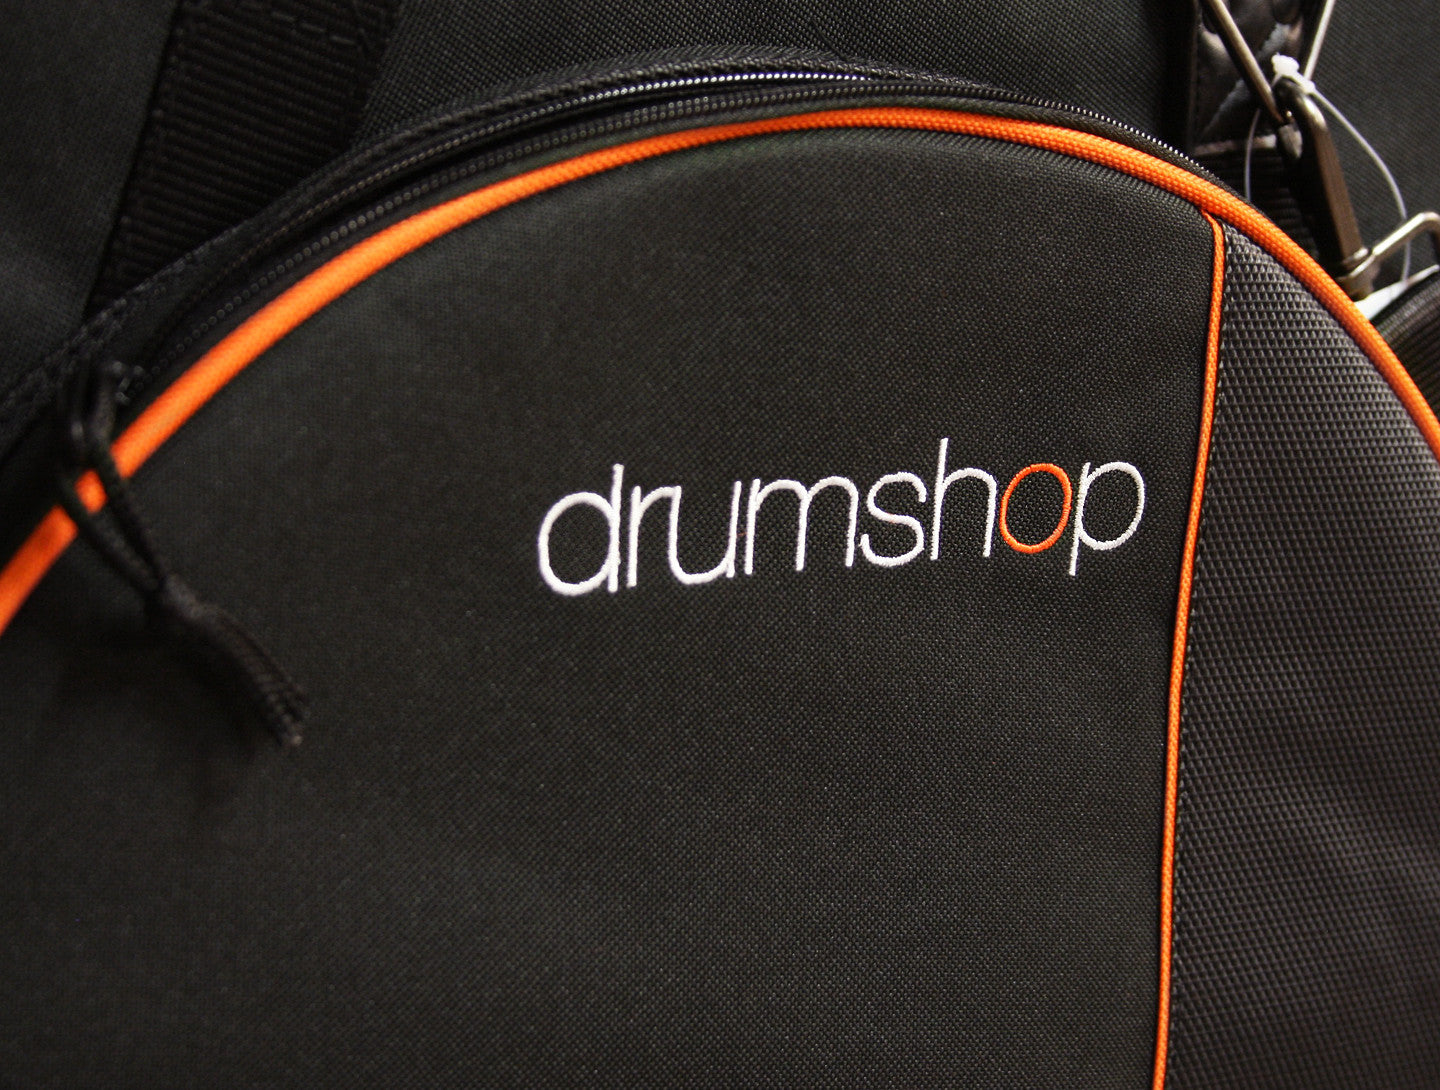 Drumshop Deluxe Cymbal Case close up